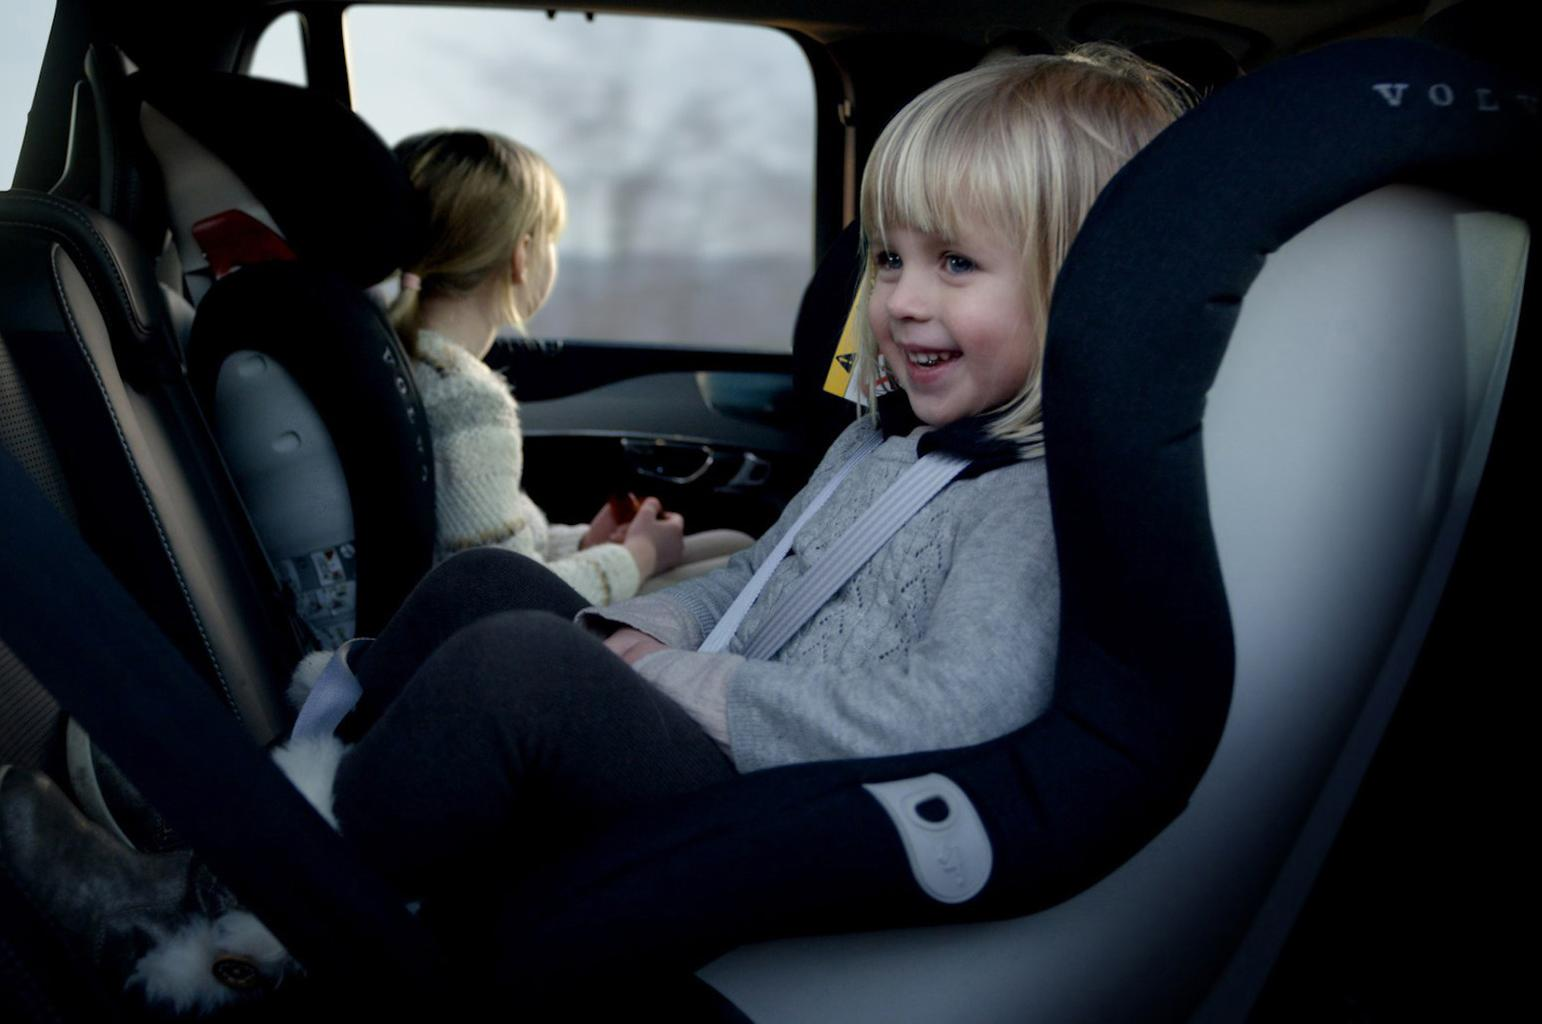 Child car seats: rearward vs forward facing, which is best?